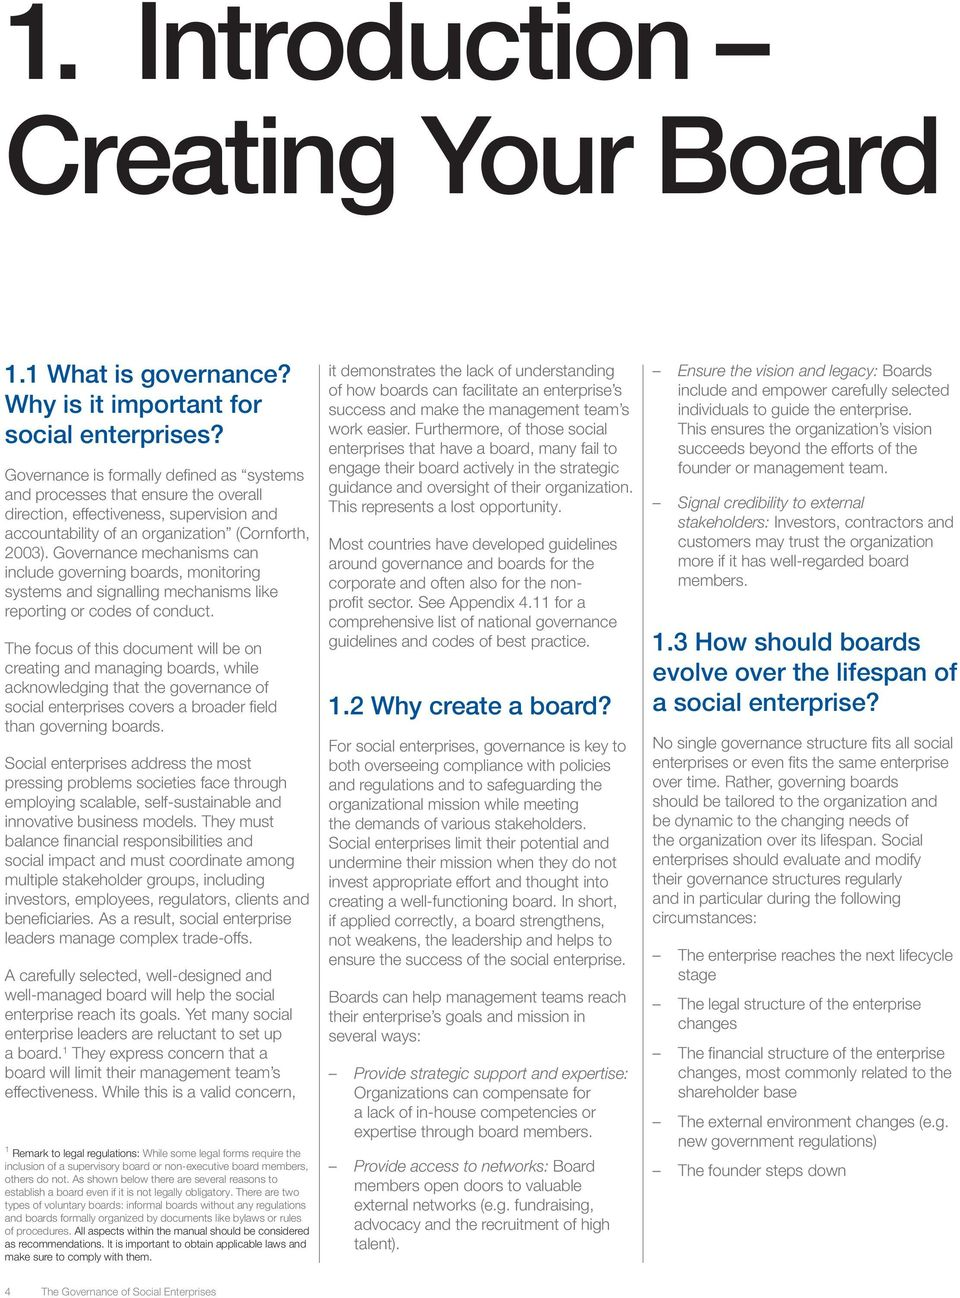 Governance mechanisms can include governing boards, monitoring systems and signalling mechanisms like reporting or codes of conduct.